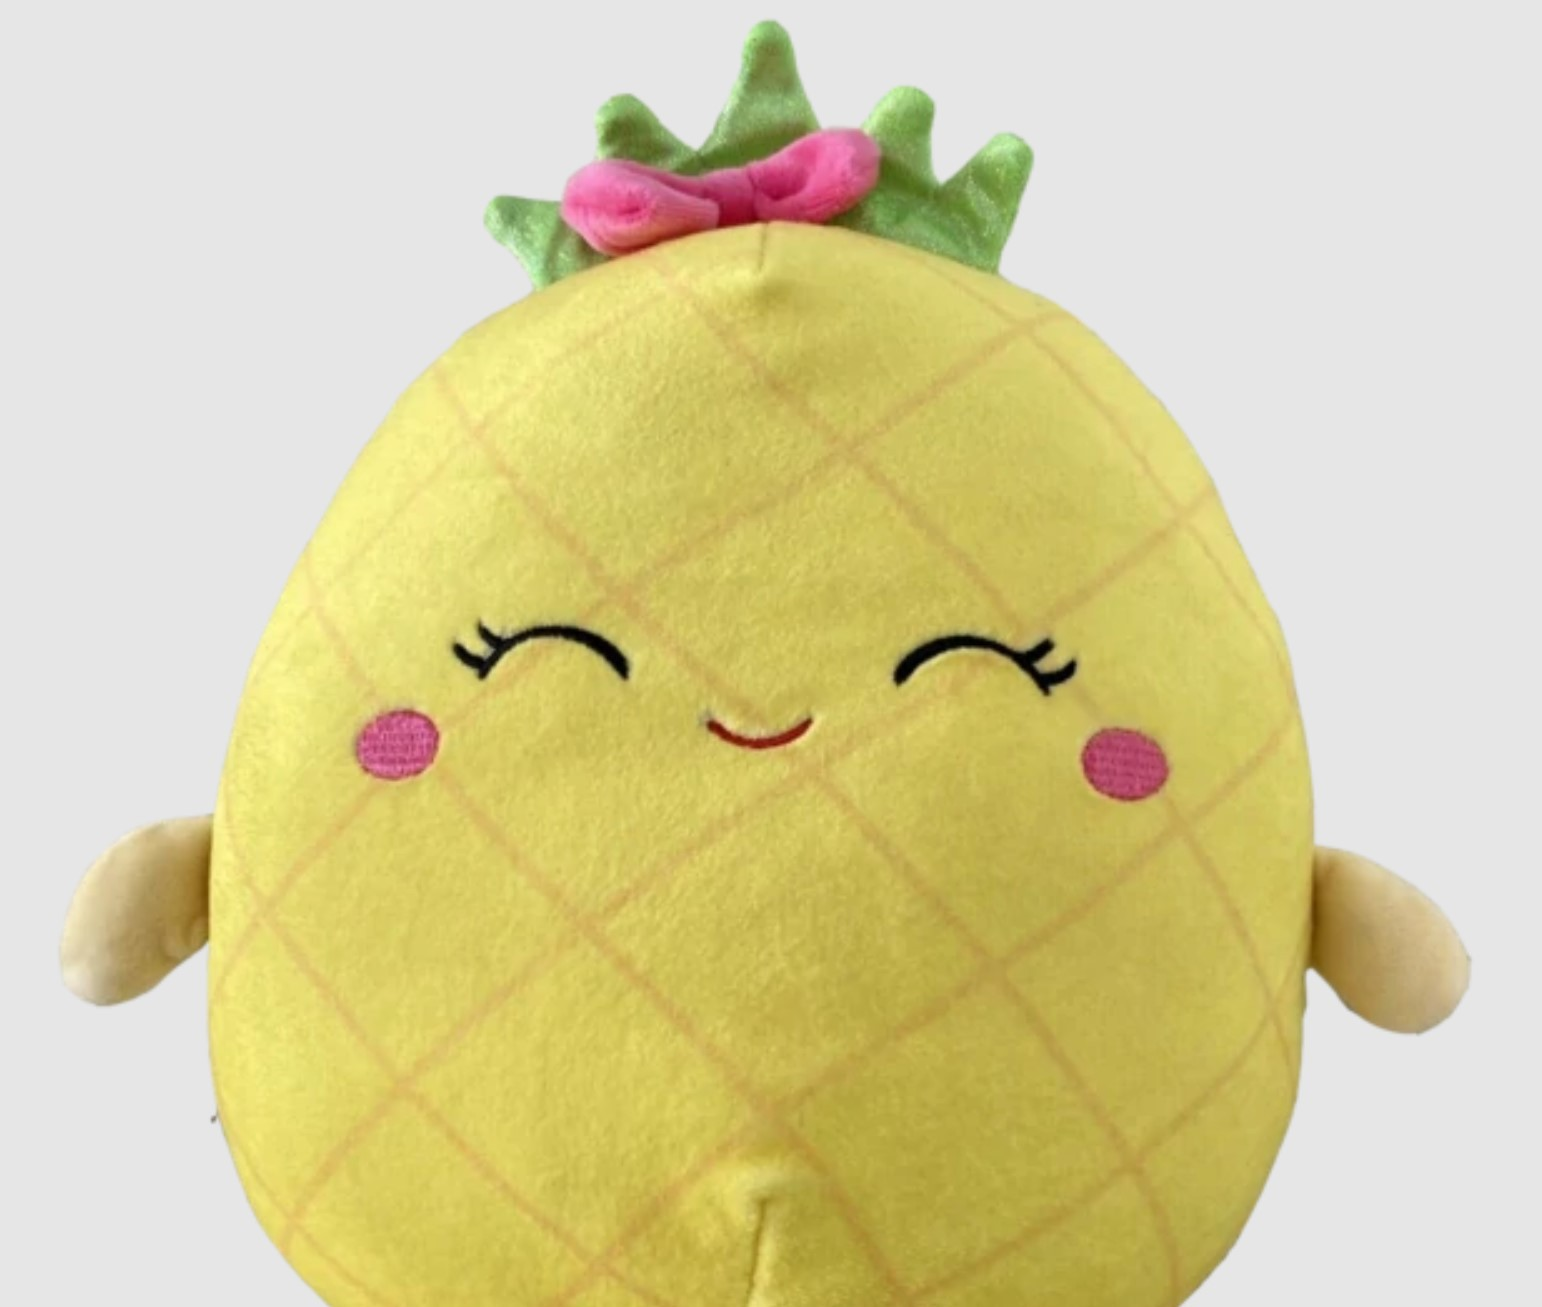 Lulu the Pineapple Squishmallow